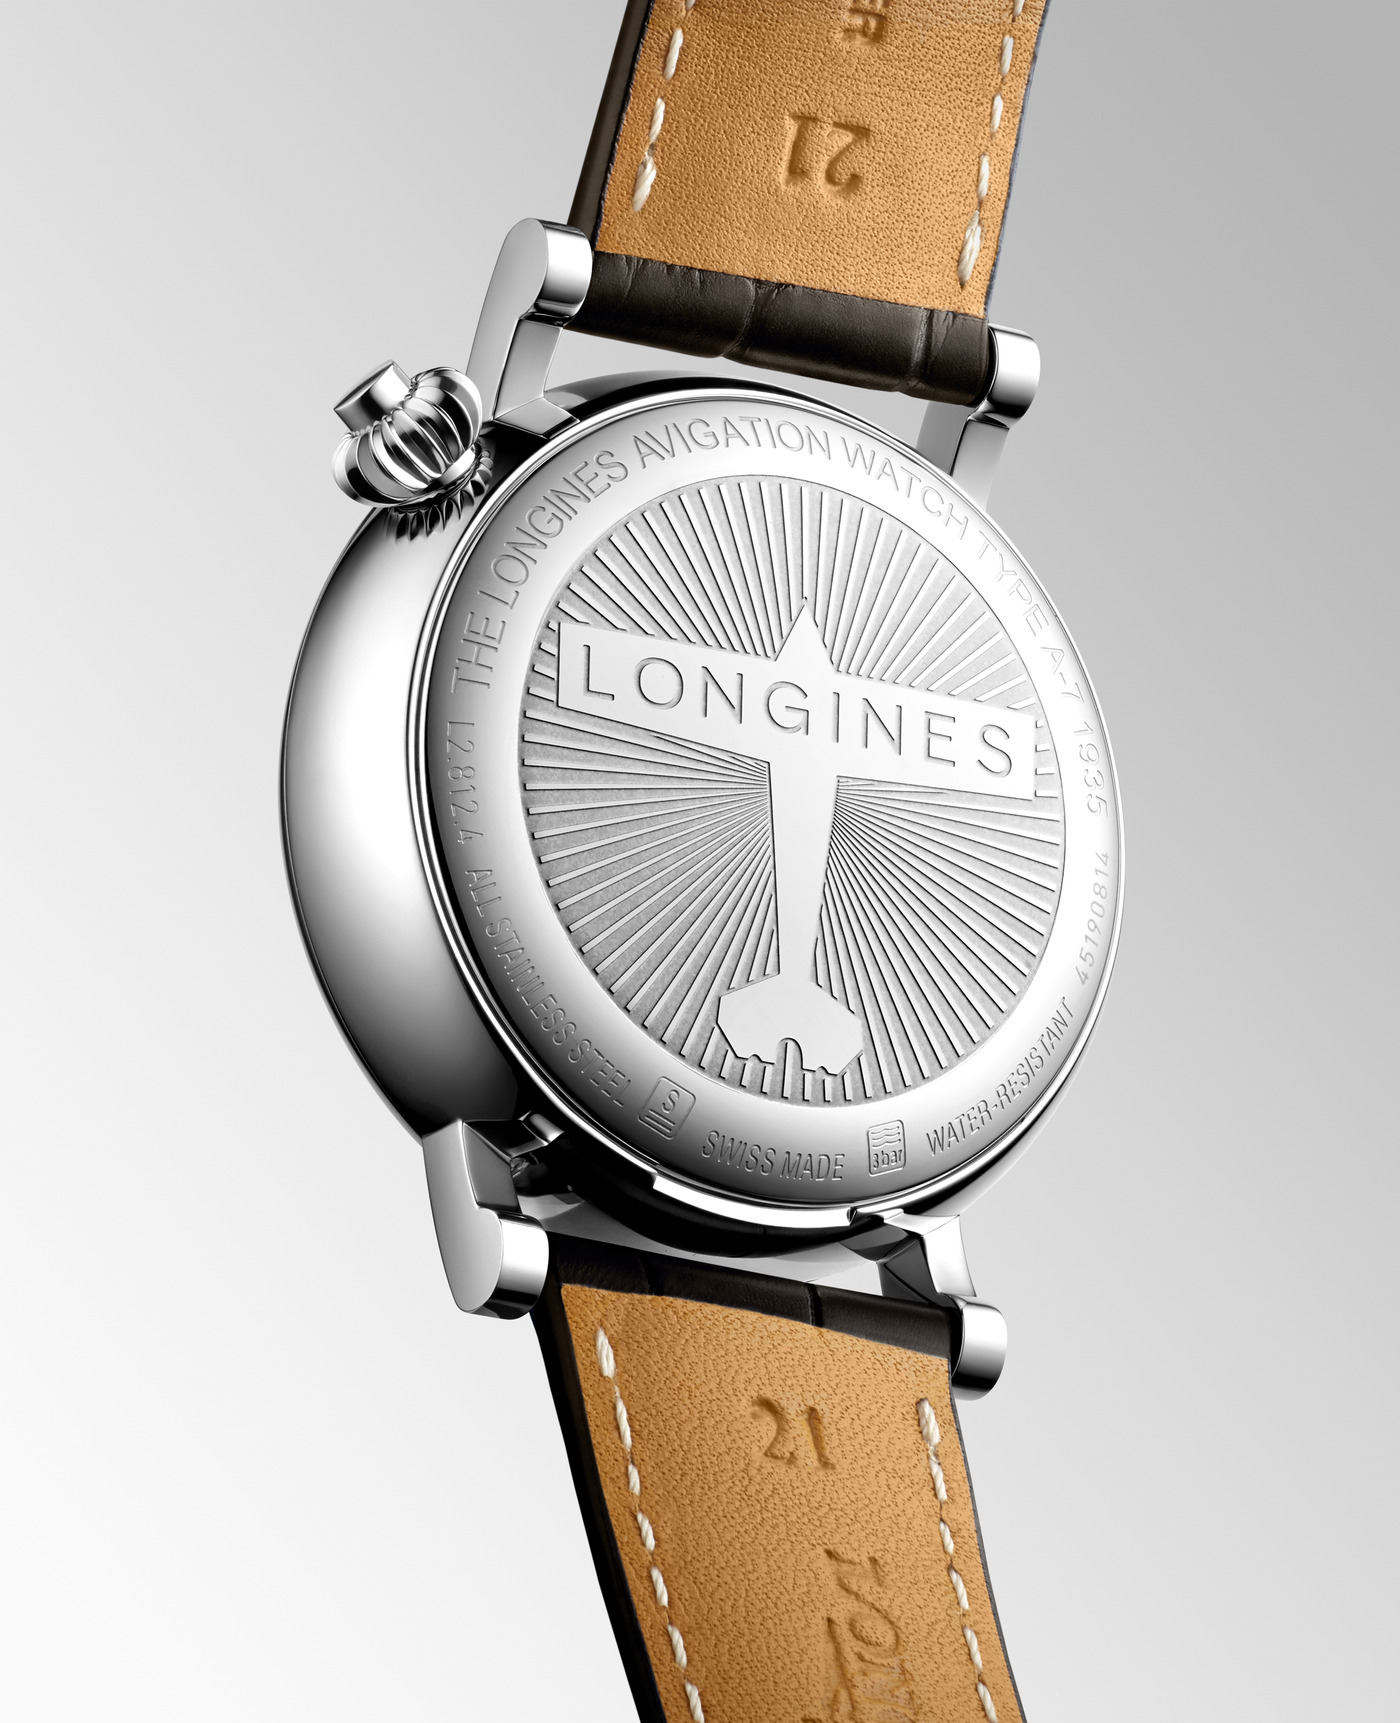 Longines The Longines Avigation Watch Type A-7 1935 Watch 1